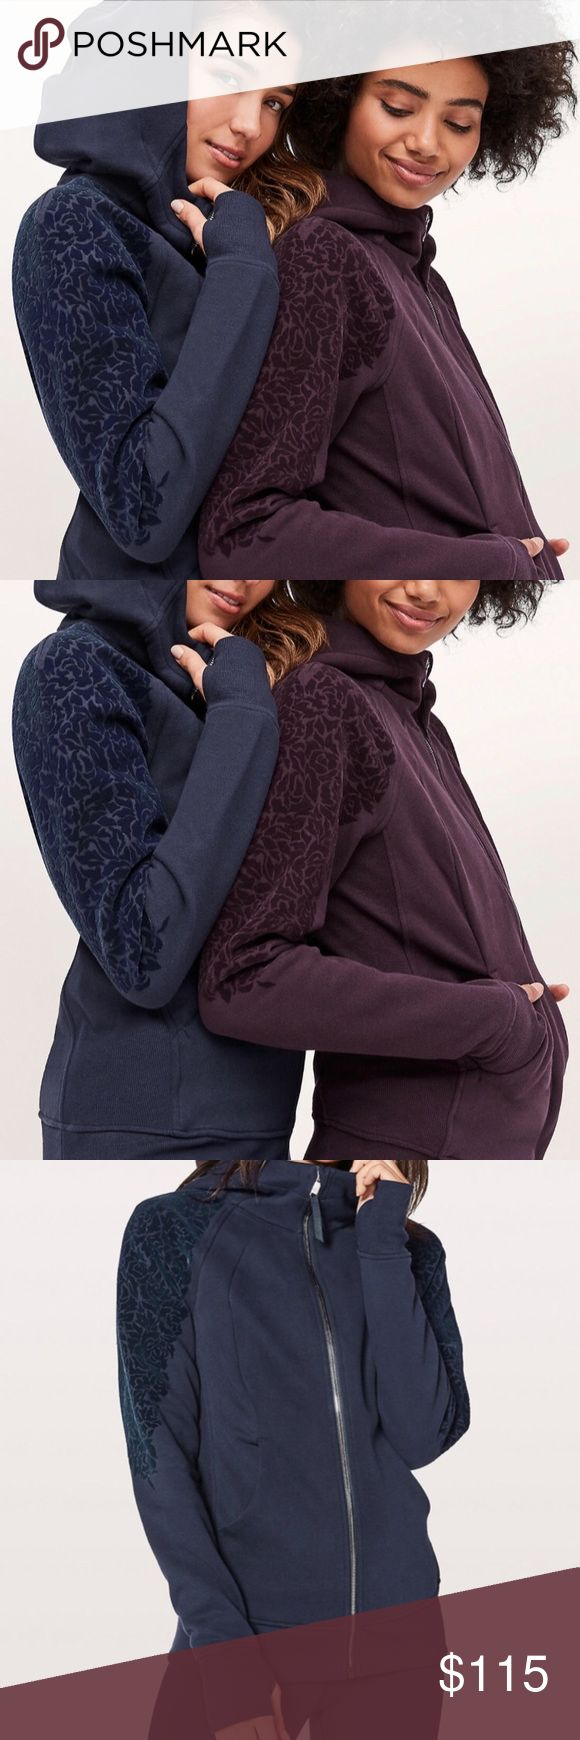 Lululemon Scuba Hoodie with Floral Flock Brand new in Midnight Navy! I have this scuba in every color and have two navy ones which is why I am selling this one!! This style and size is sold out everywhere! Comfort meets craftsmanship in this special edition of our Scuba Hoodie. It has the same cozy warmth that you know and love, with a velvety floral detail down the arms for a little added flair. lululemon athletica Jackets & Coats